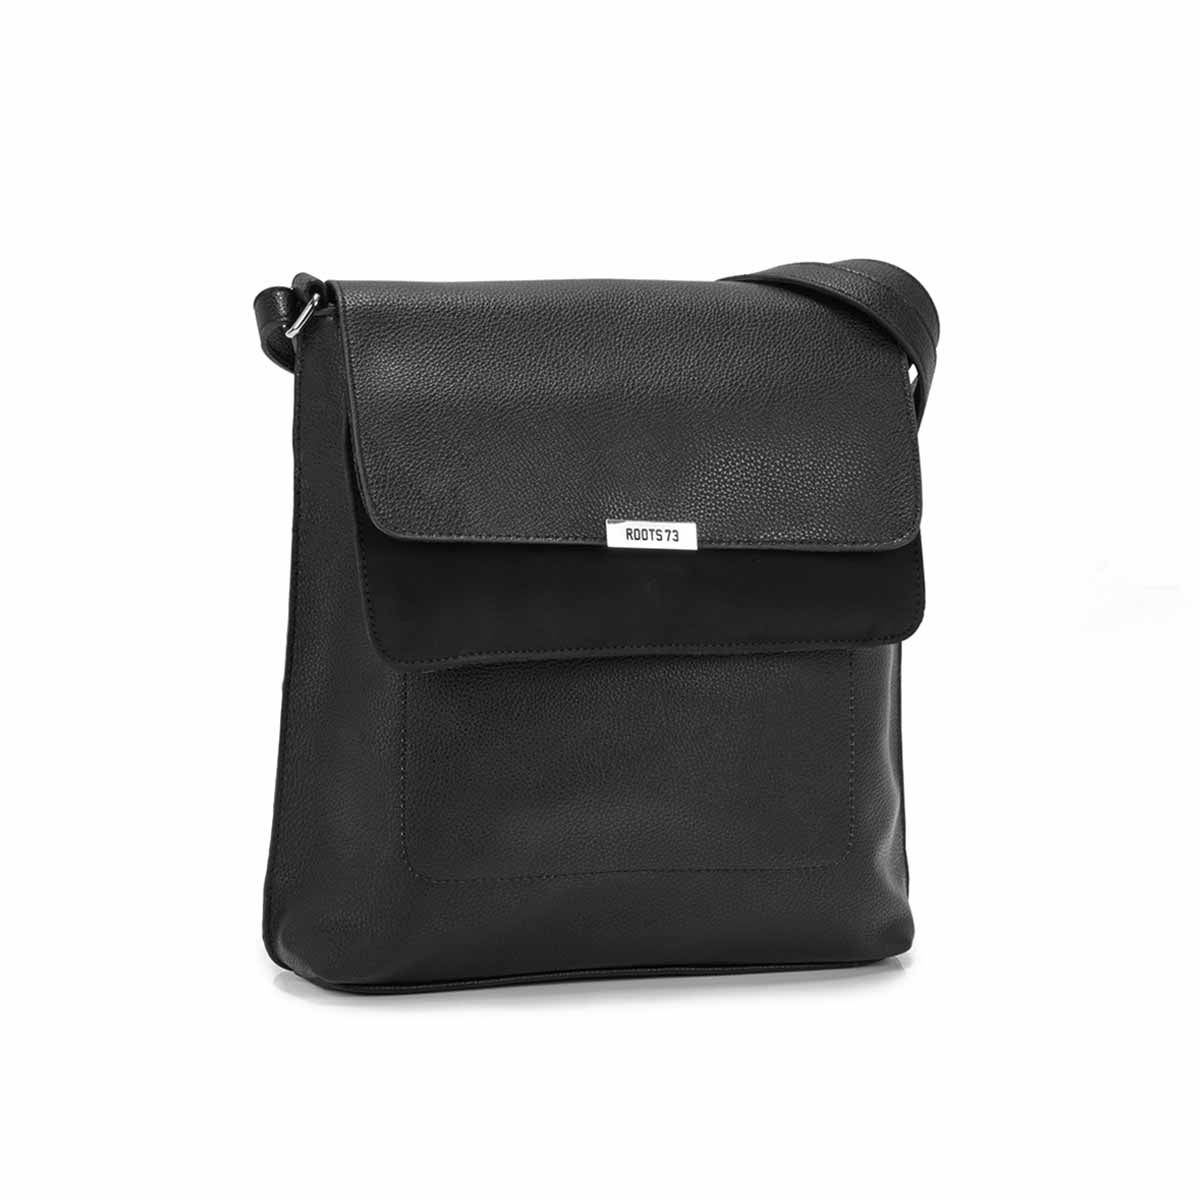 Women's R5347 black double flap crossbody bag